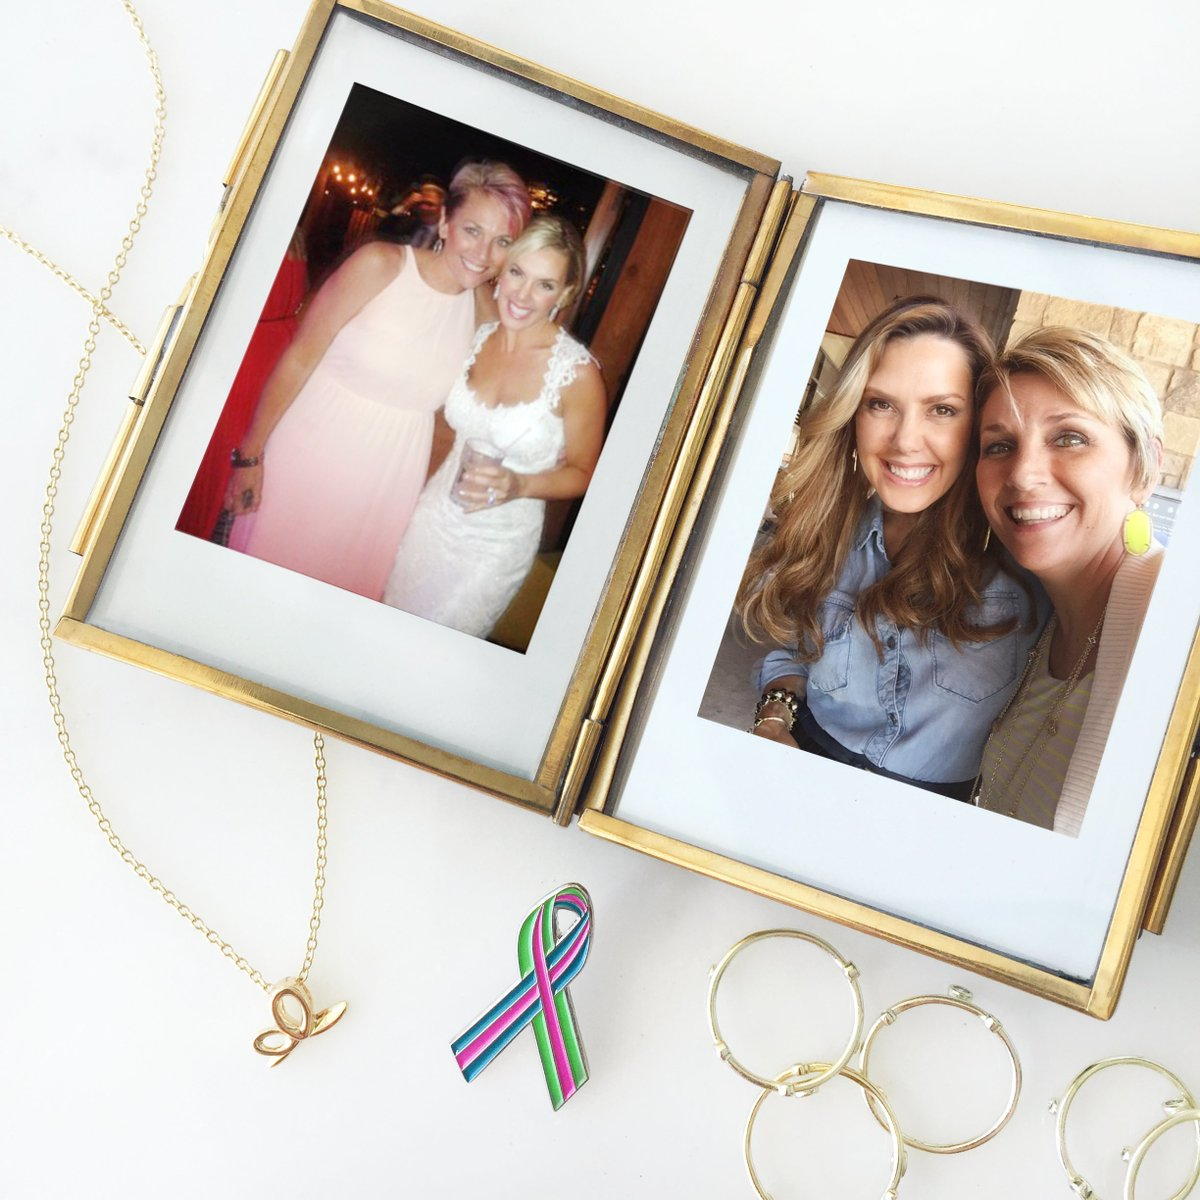 kendra scott on research matters holley matters today kendra scott on research matters holley matters today is our inaugural holley day we will donate 100 000 to metavivor t co w2q4v24kyf